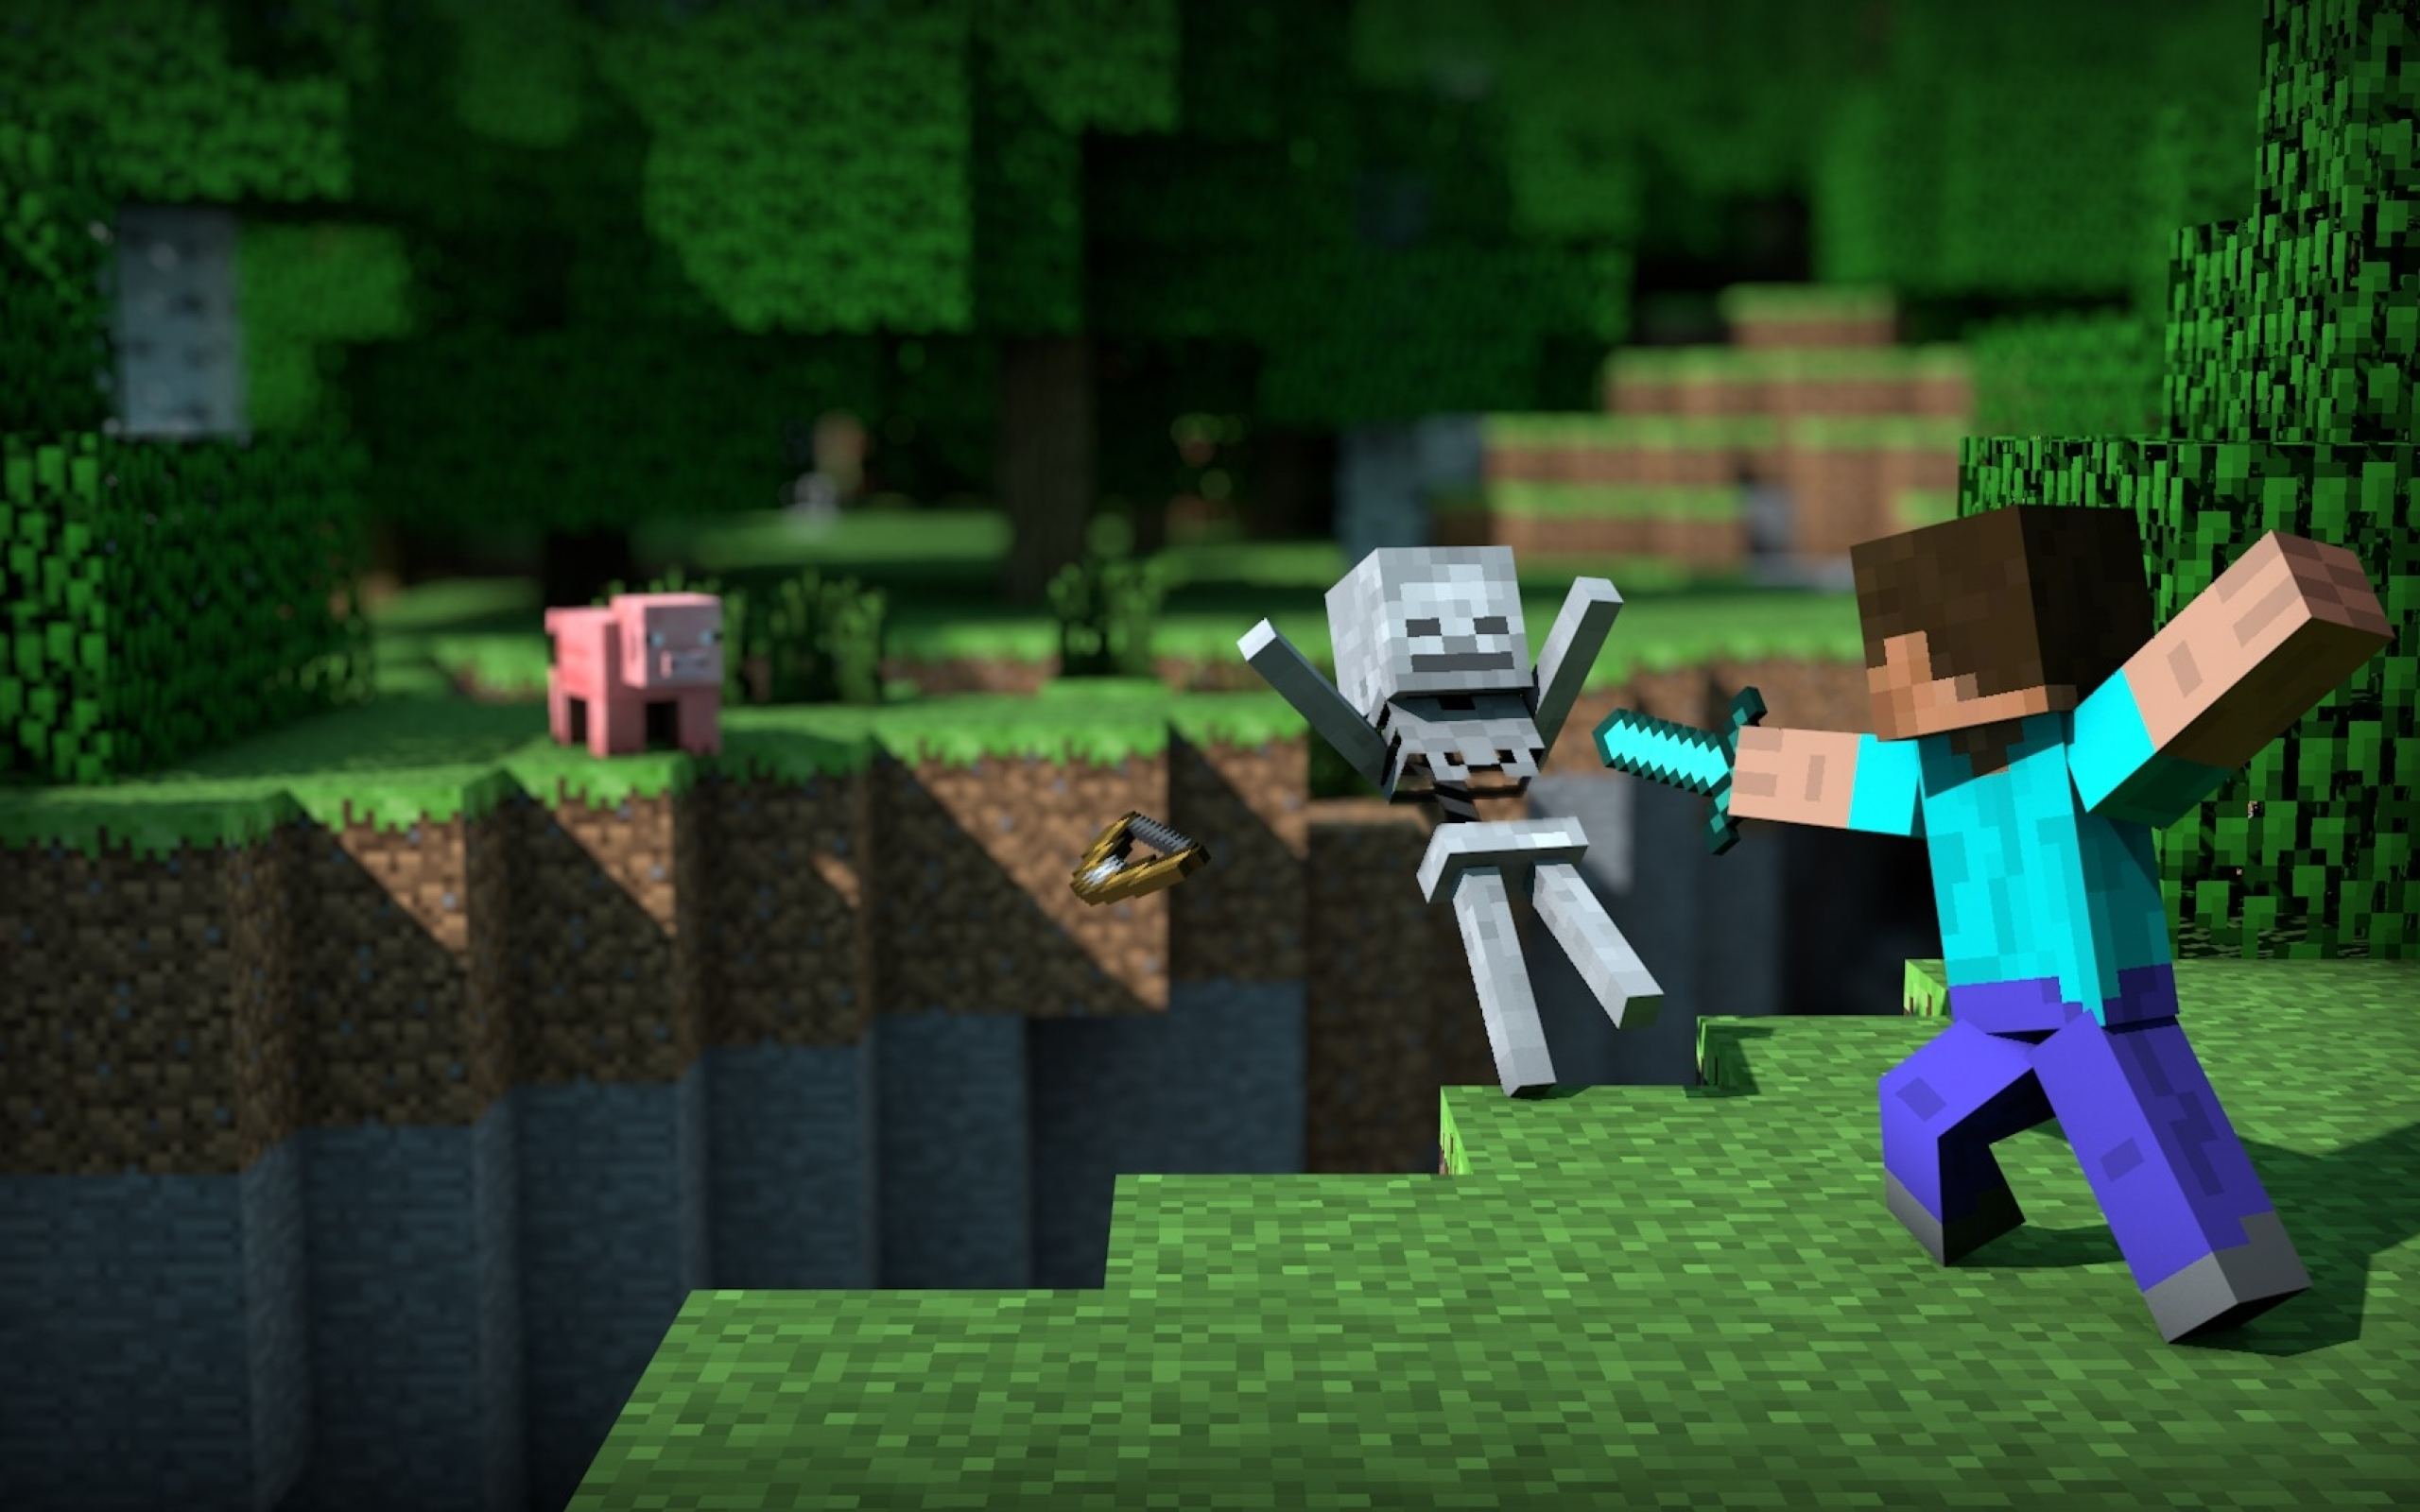 Download Wallpaper Minecraft Dual Screen - Minecraft-Skeleton-wallpaper  Trends_491371.jpg